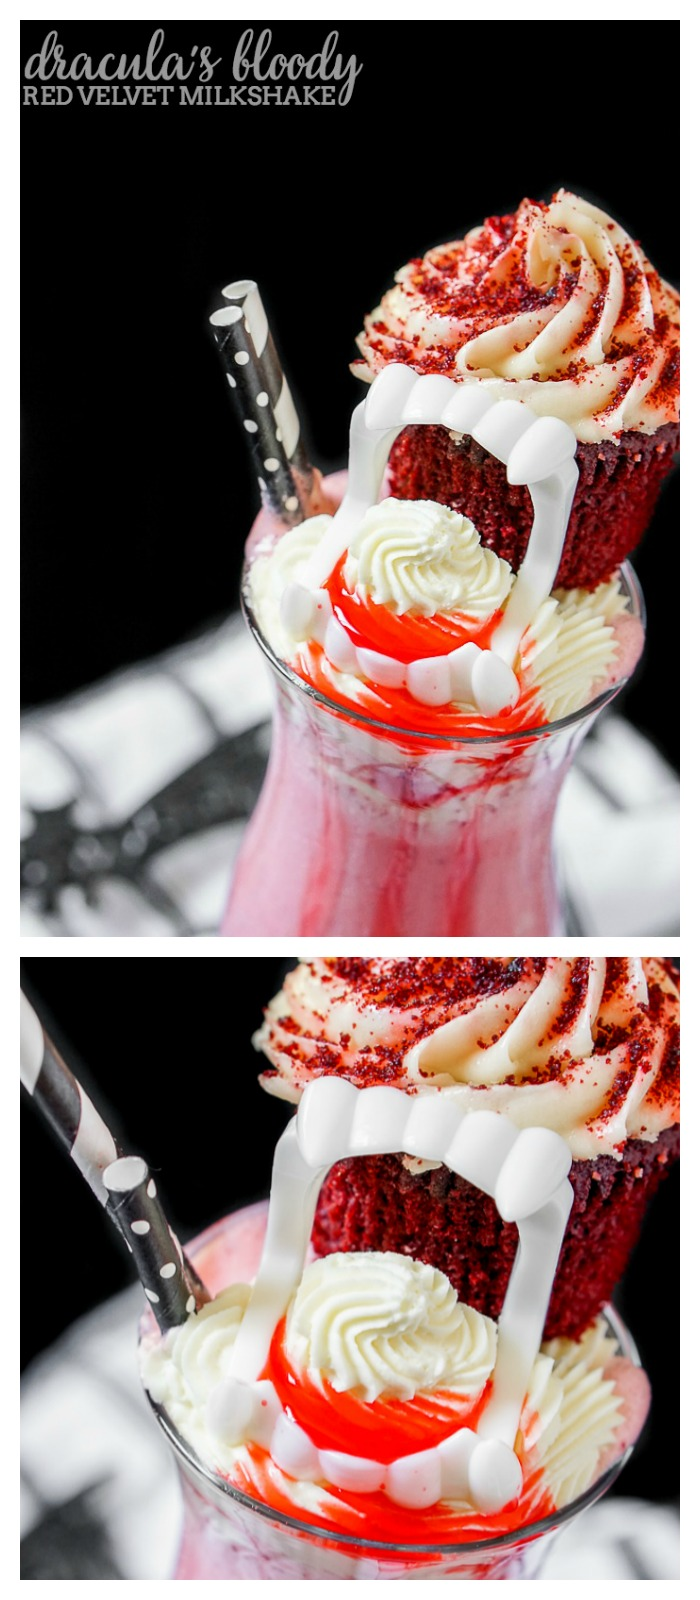 Dracula's Bloody Red Velvet Milkshake is a perfect Halloween dessert but you should definitely enjoy this milkshake recipe all year long! | The Love Nerds